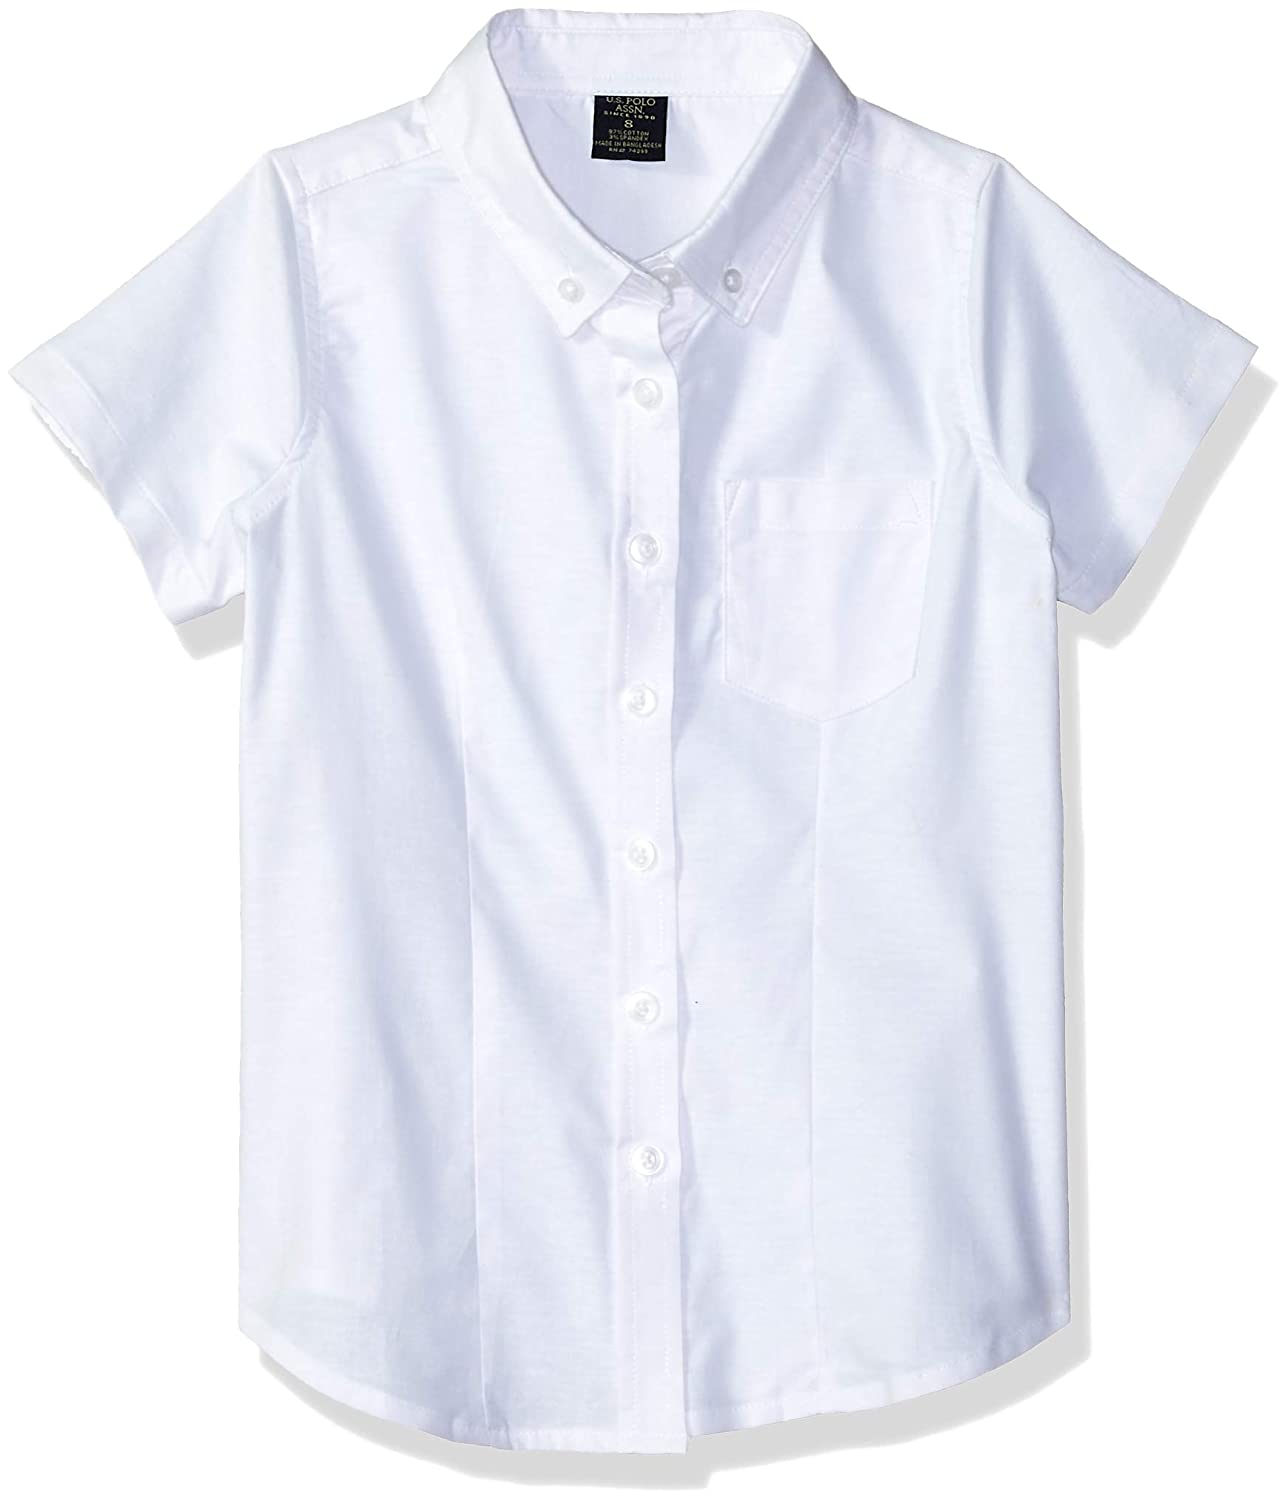 U.S. Polo Assn. Girls' Short Sleeve Stretch Oxford Slim Fit Blouse 7408